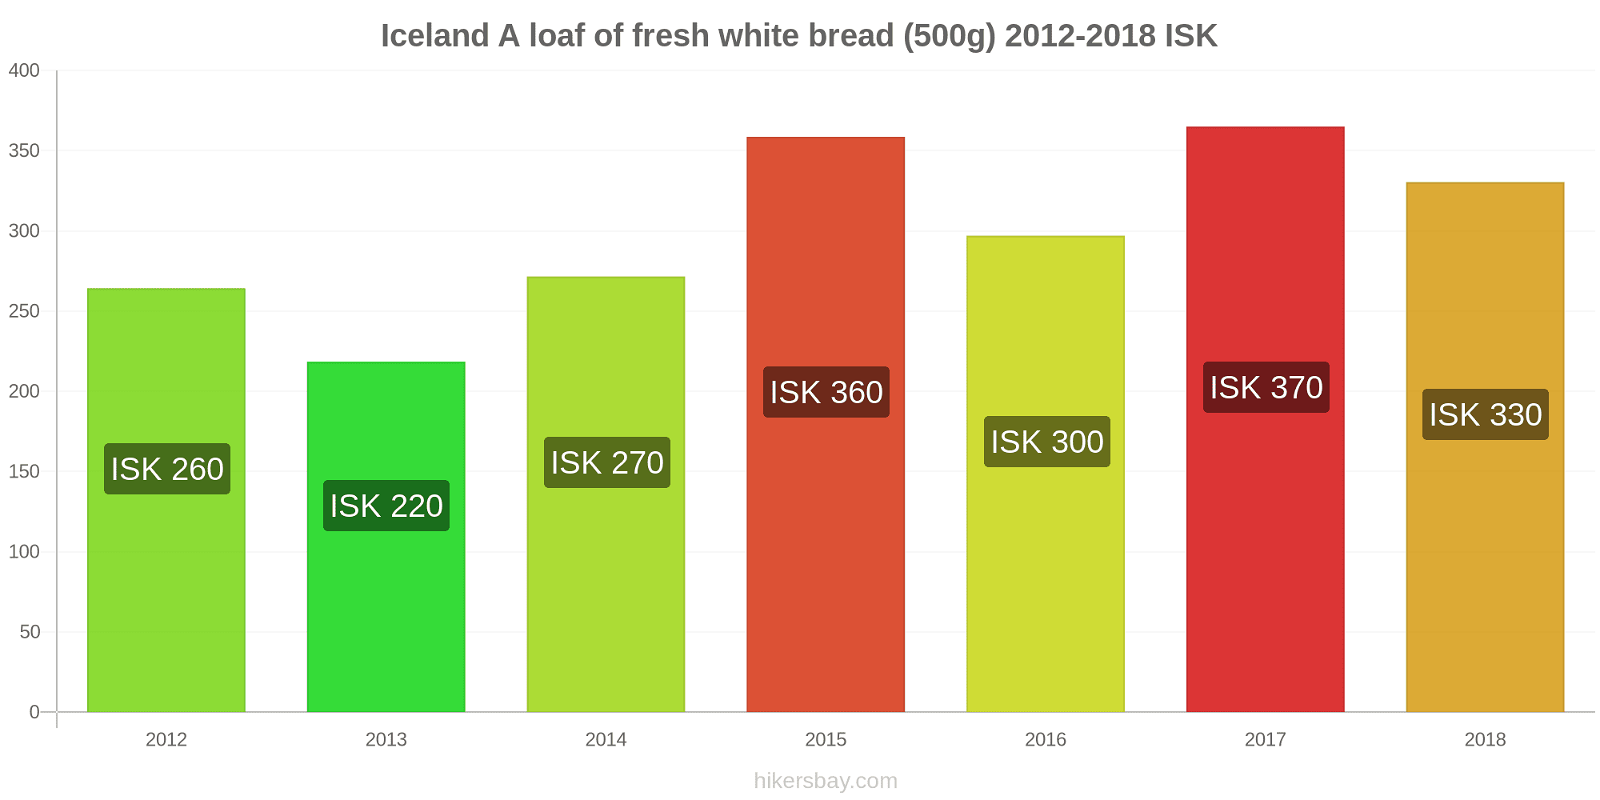 Iceland price changes A loaf of fresh white bread (500g) hikersbay.com